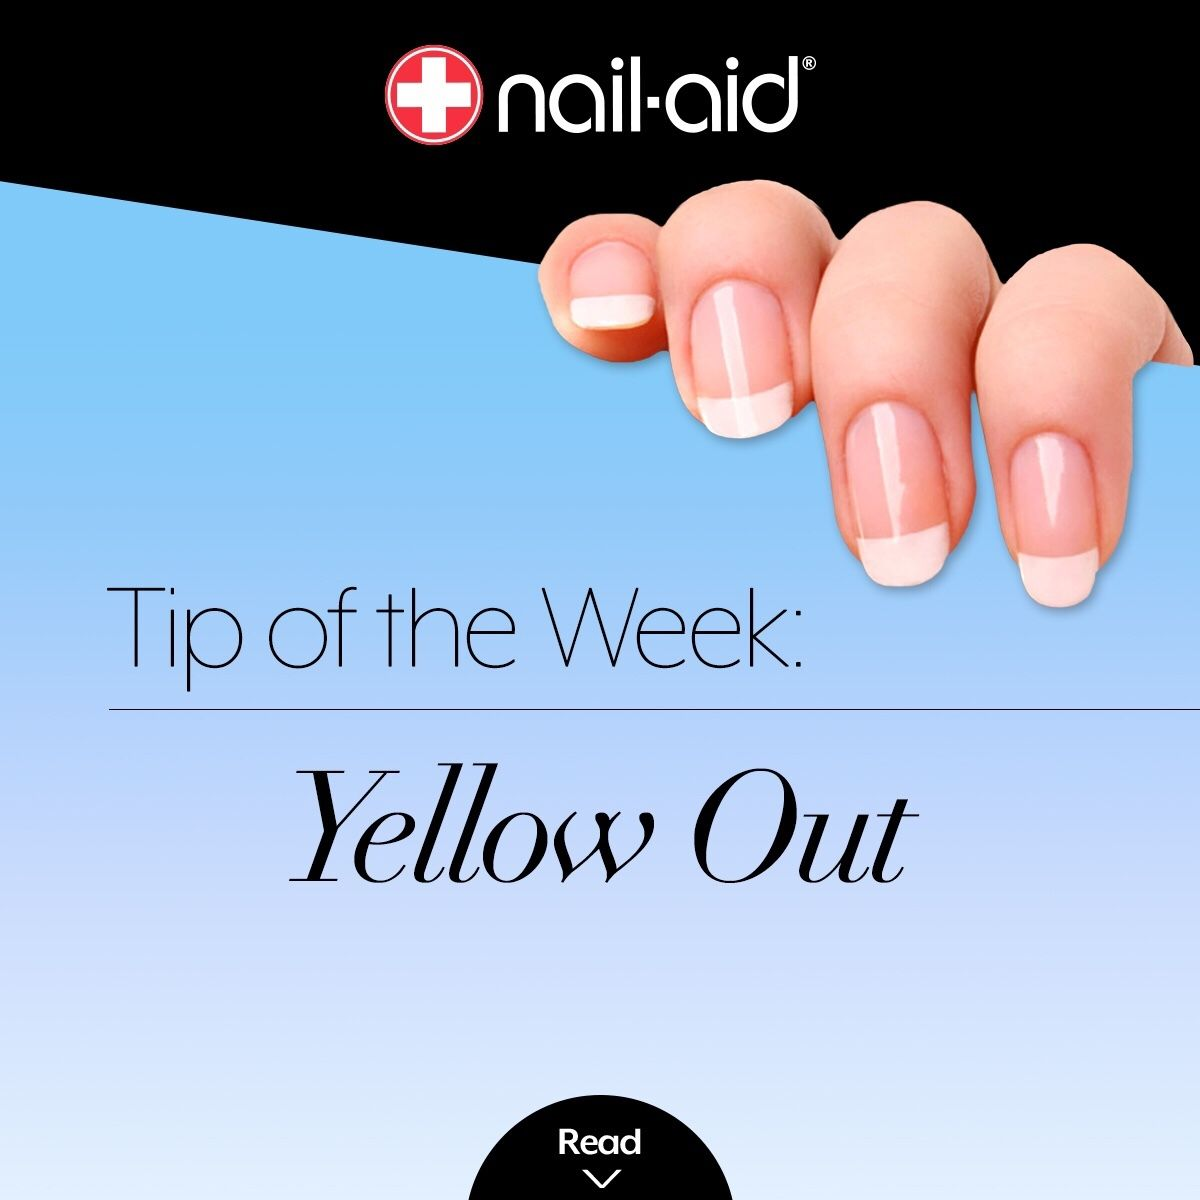 Nails are yellow when you take off your polish? Rub nails with a ...